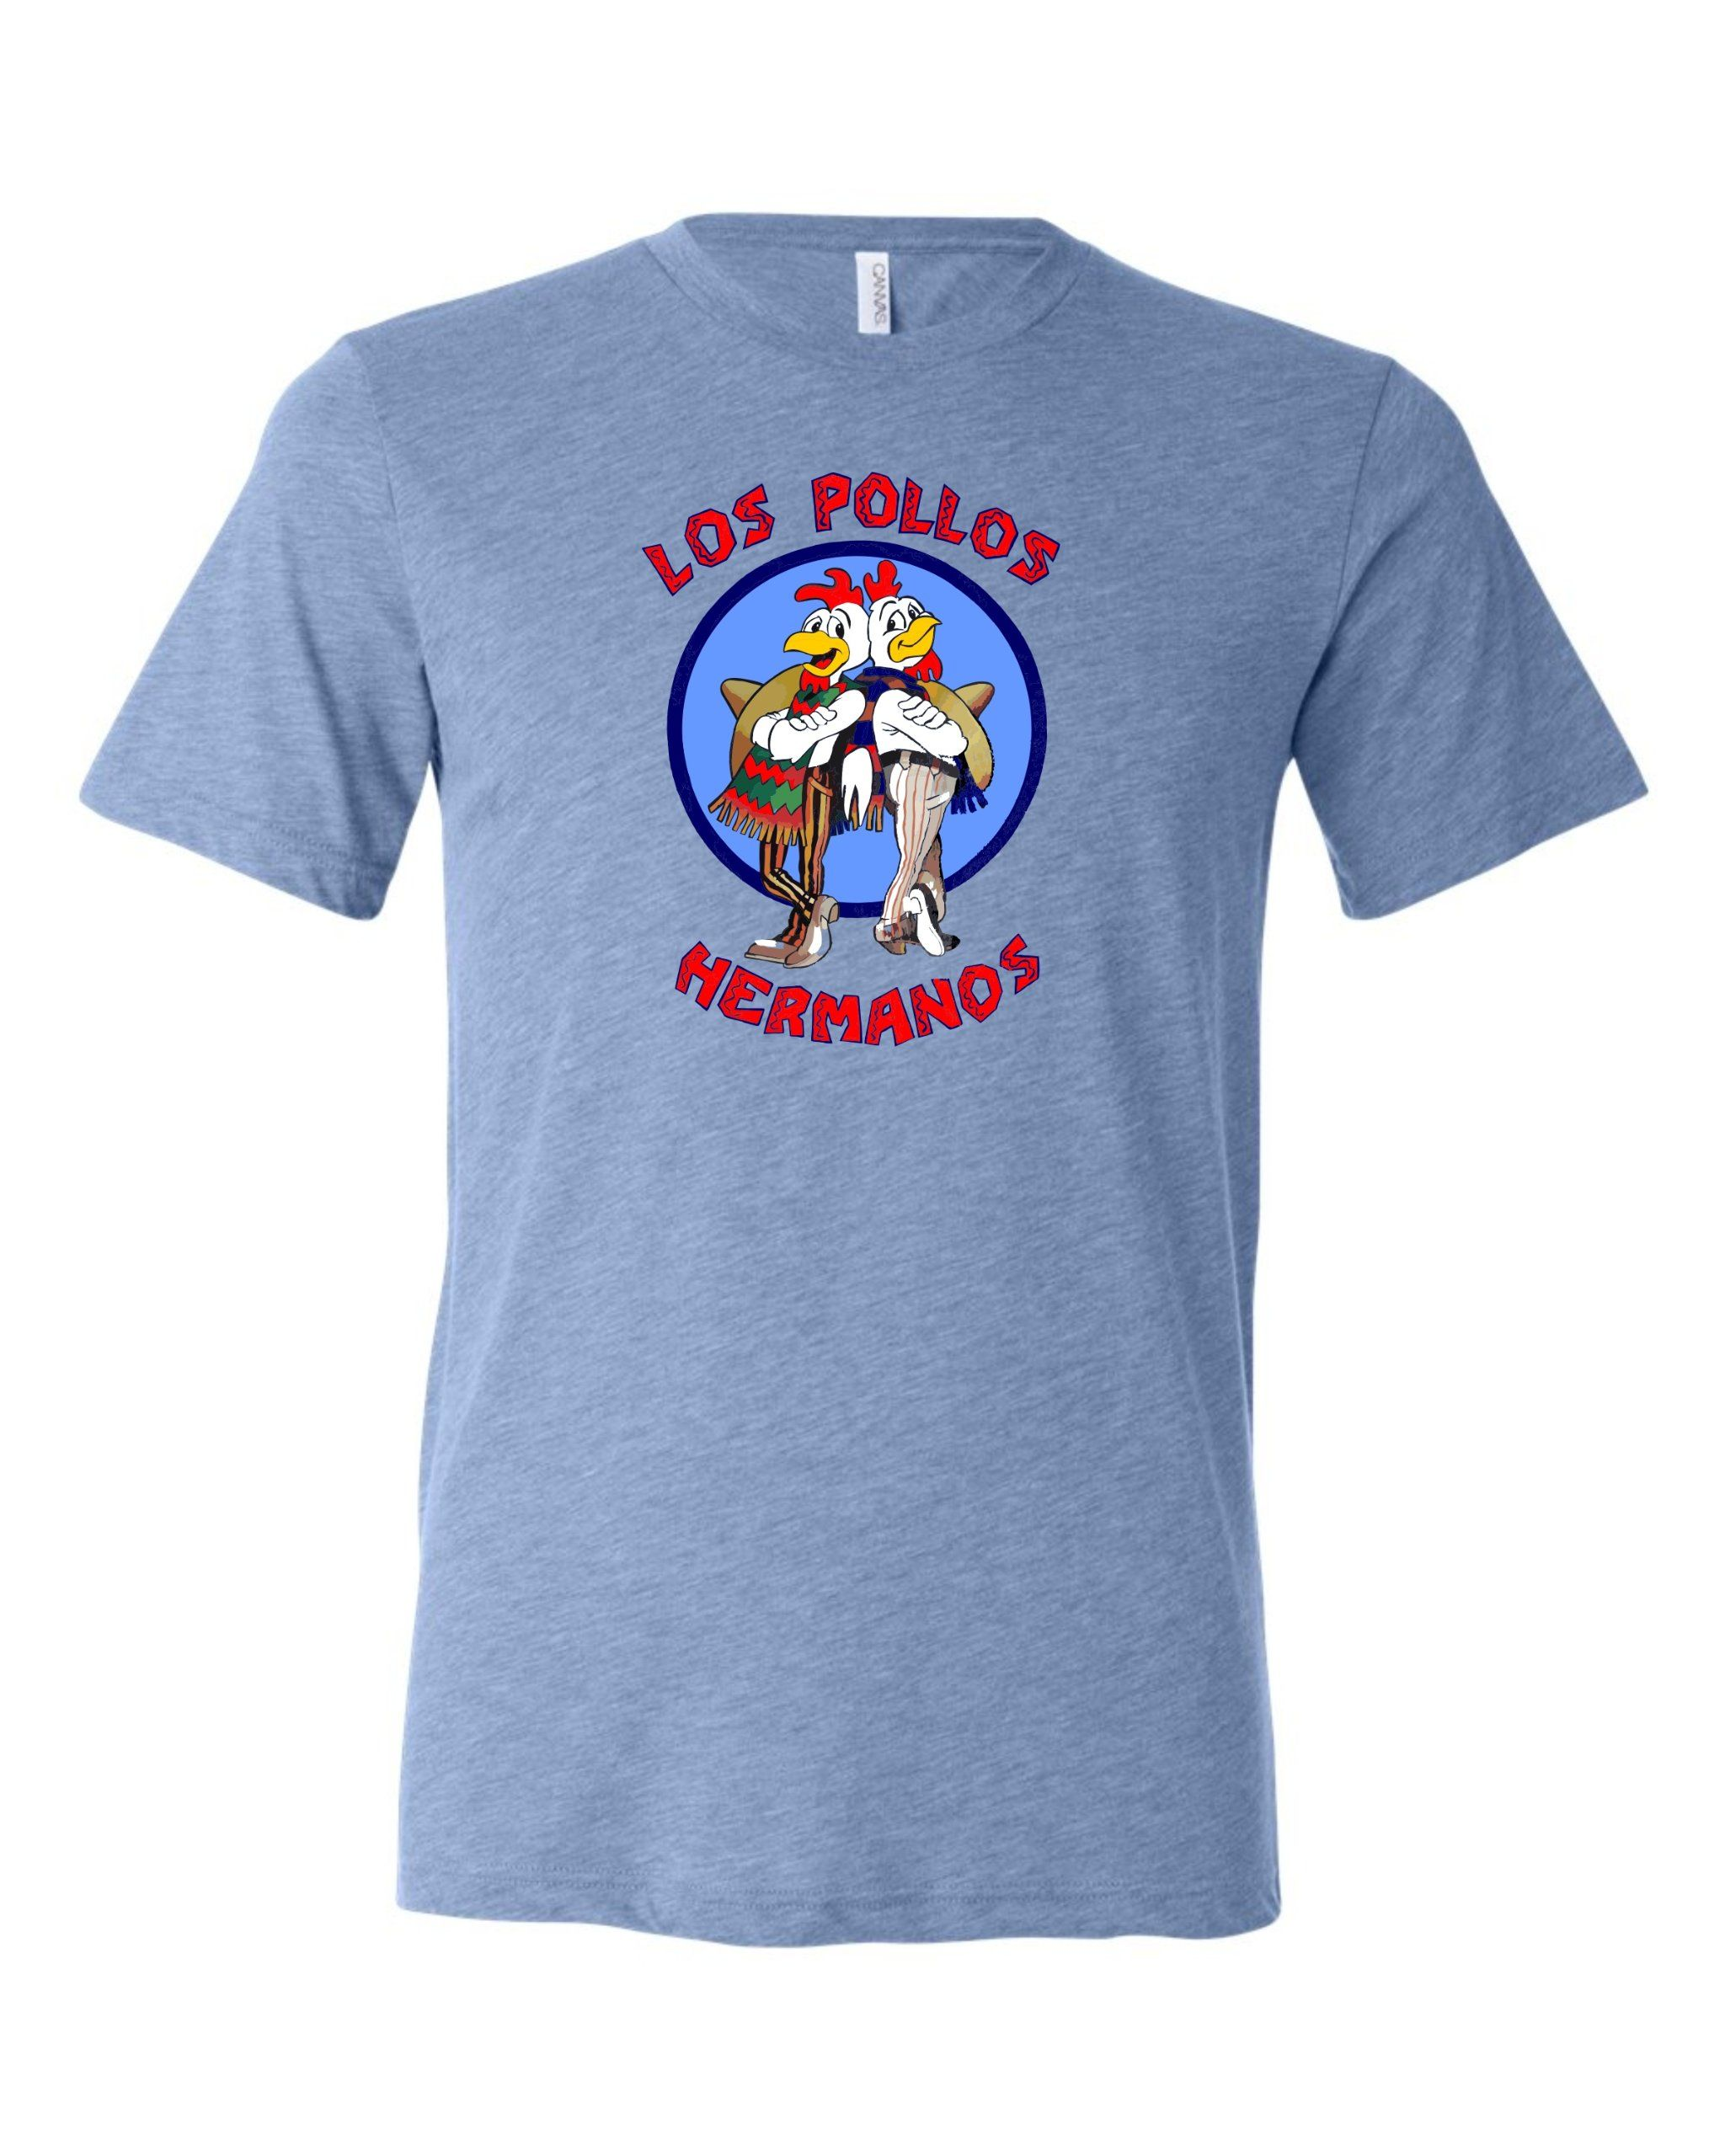 Small Blue Adult Los Pollos Hermanos Breaking Bad Inspired Triblend Short Sleeve T-Shirt